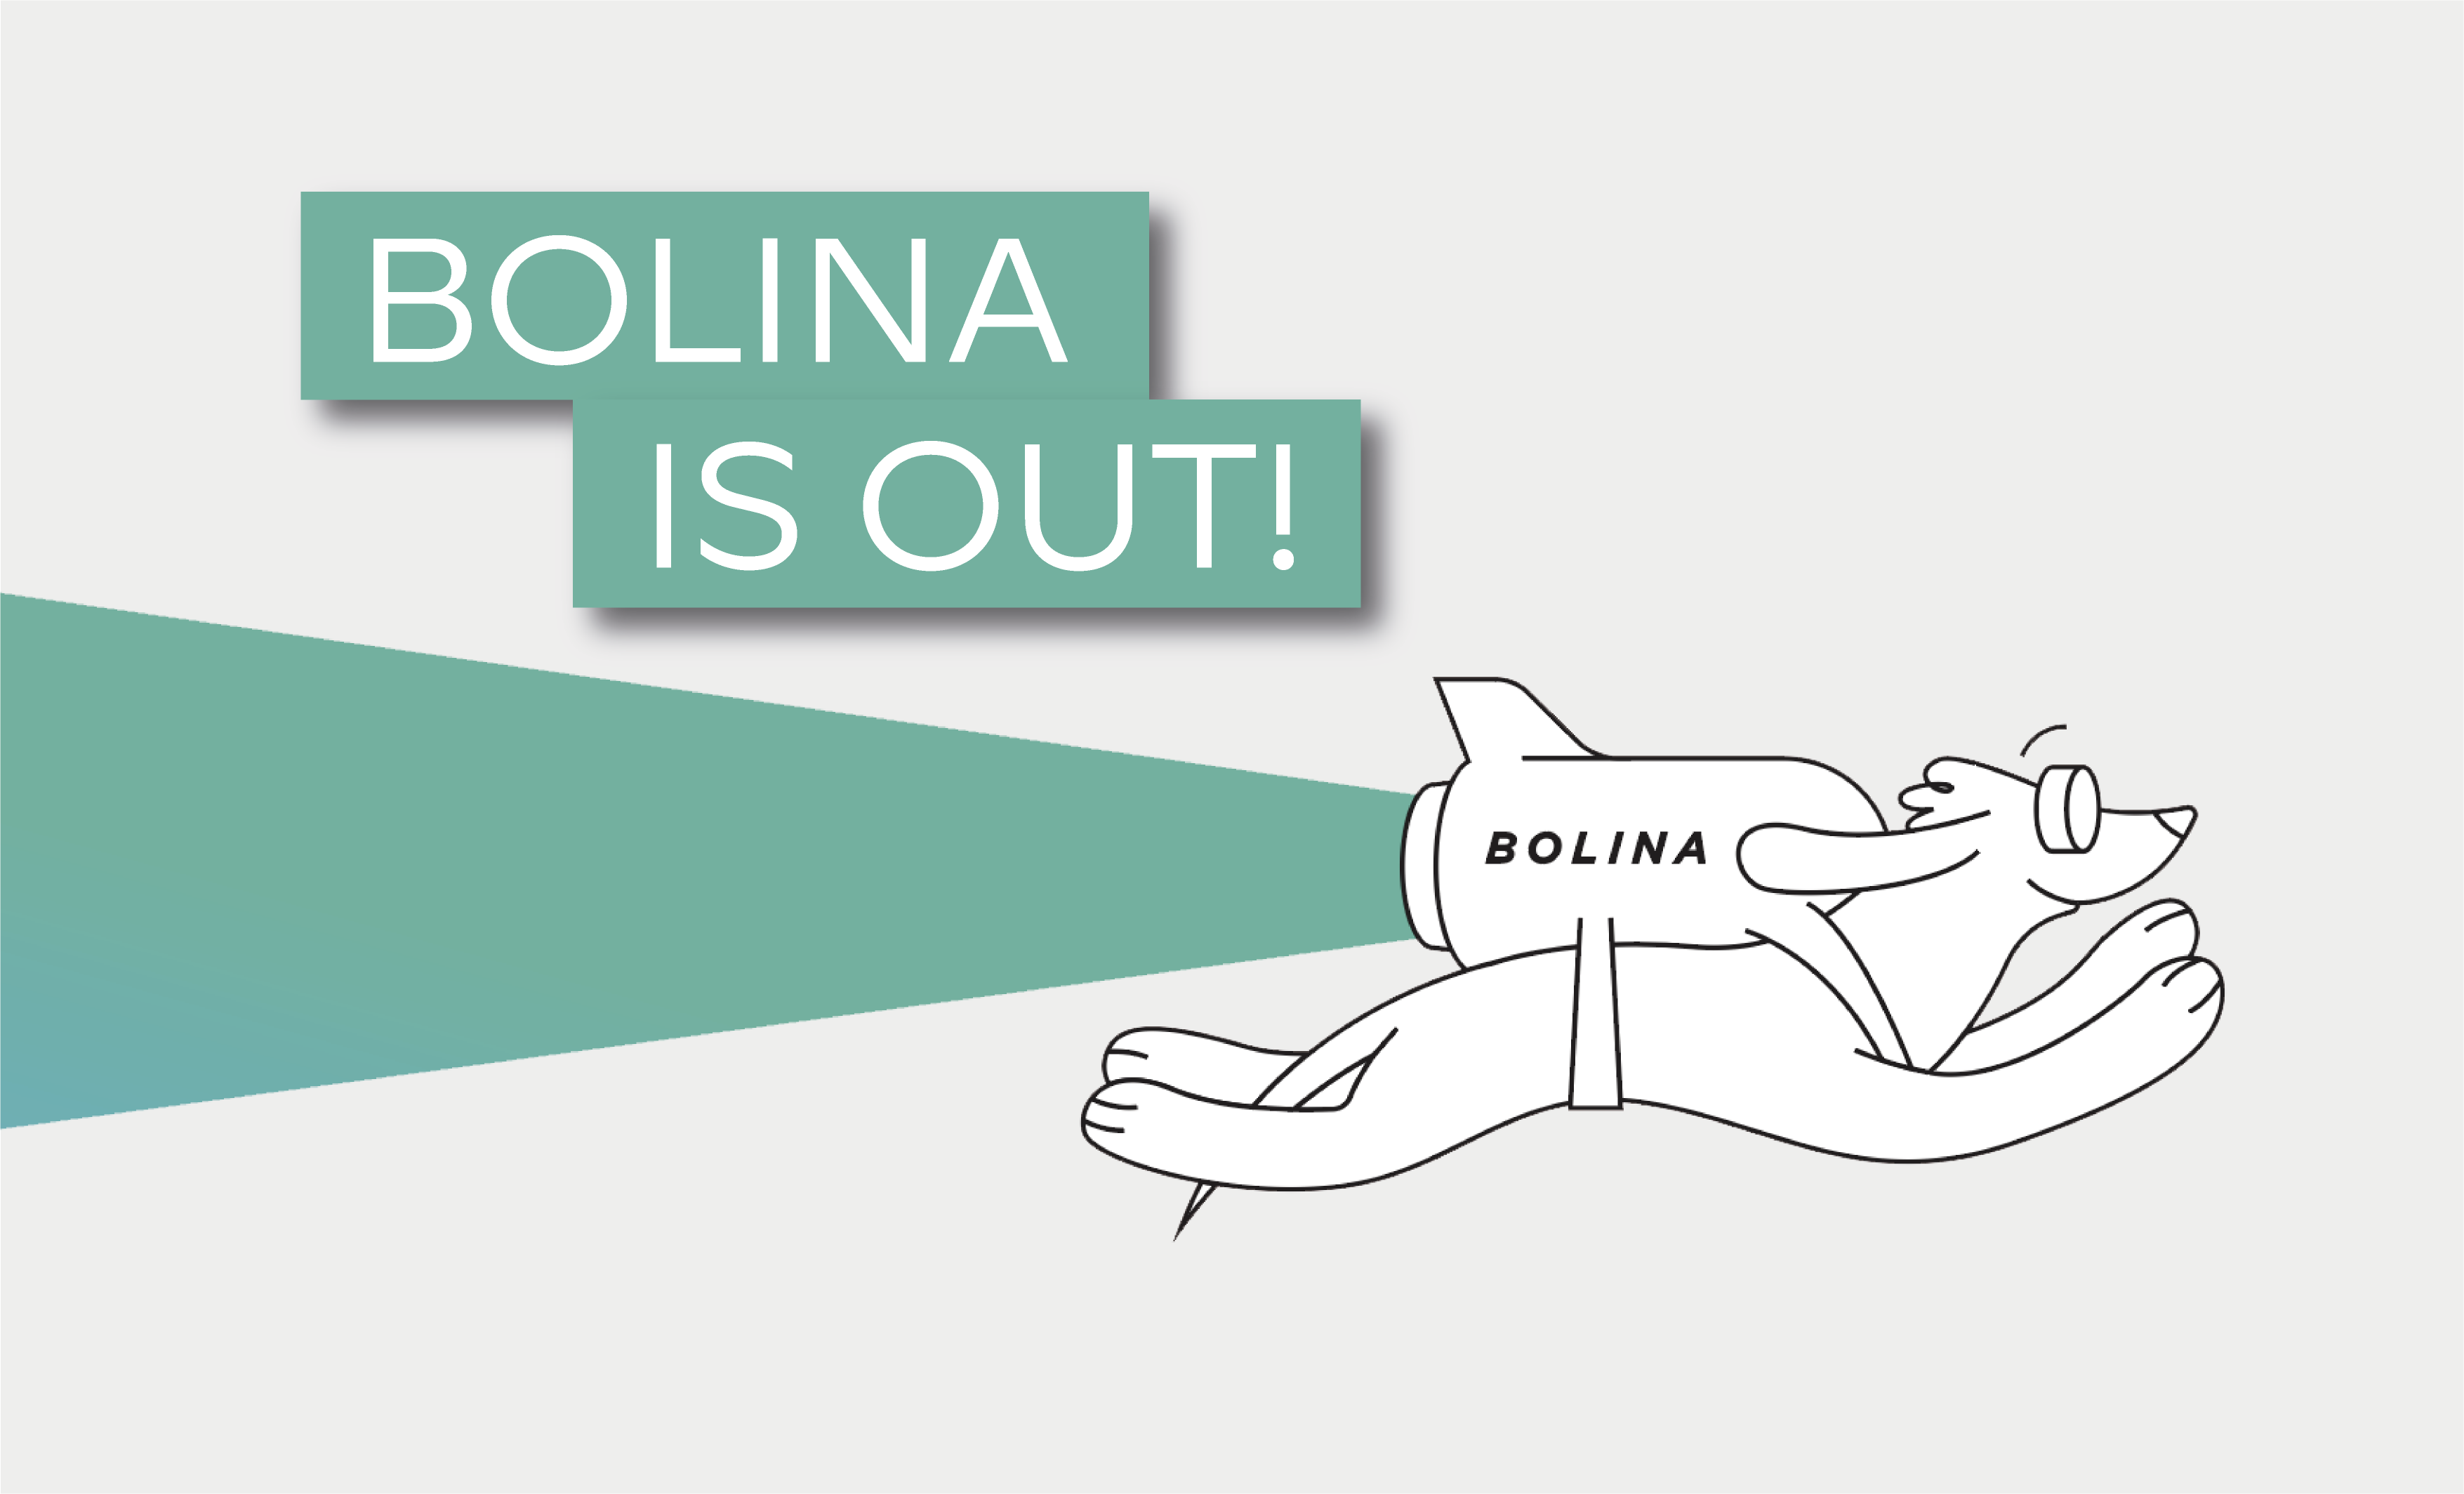 Mobile devs, stop the network from killing your users' experience. Bolina is out!